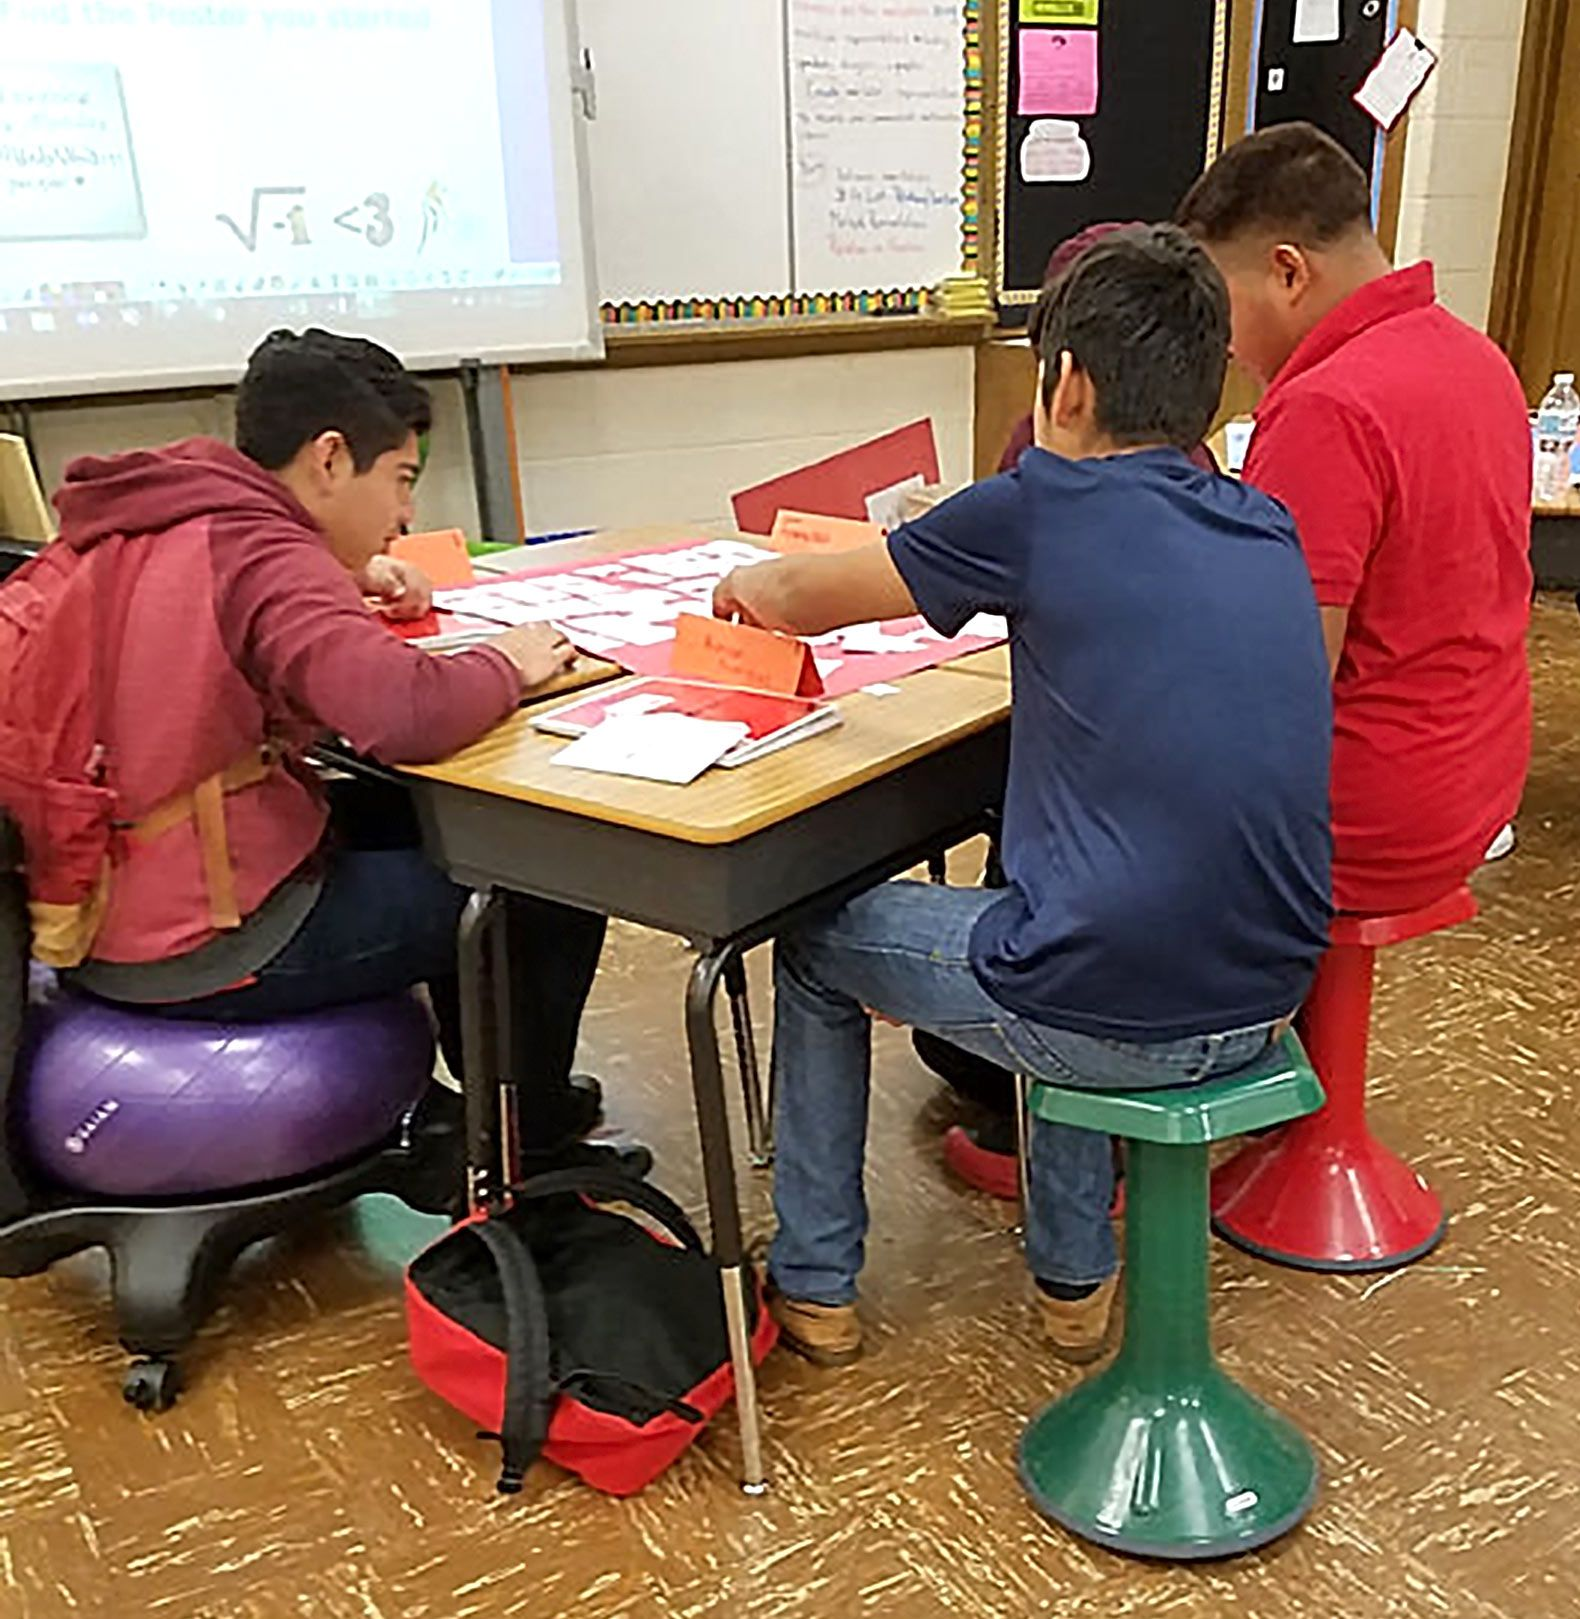 A high school math teacher at a Title 1 school  raised $478, funding two Gaiam balance ball chairs and four Learniture active learning stools through her DonorsChoose.org project.